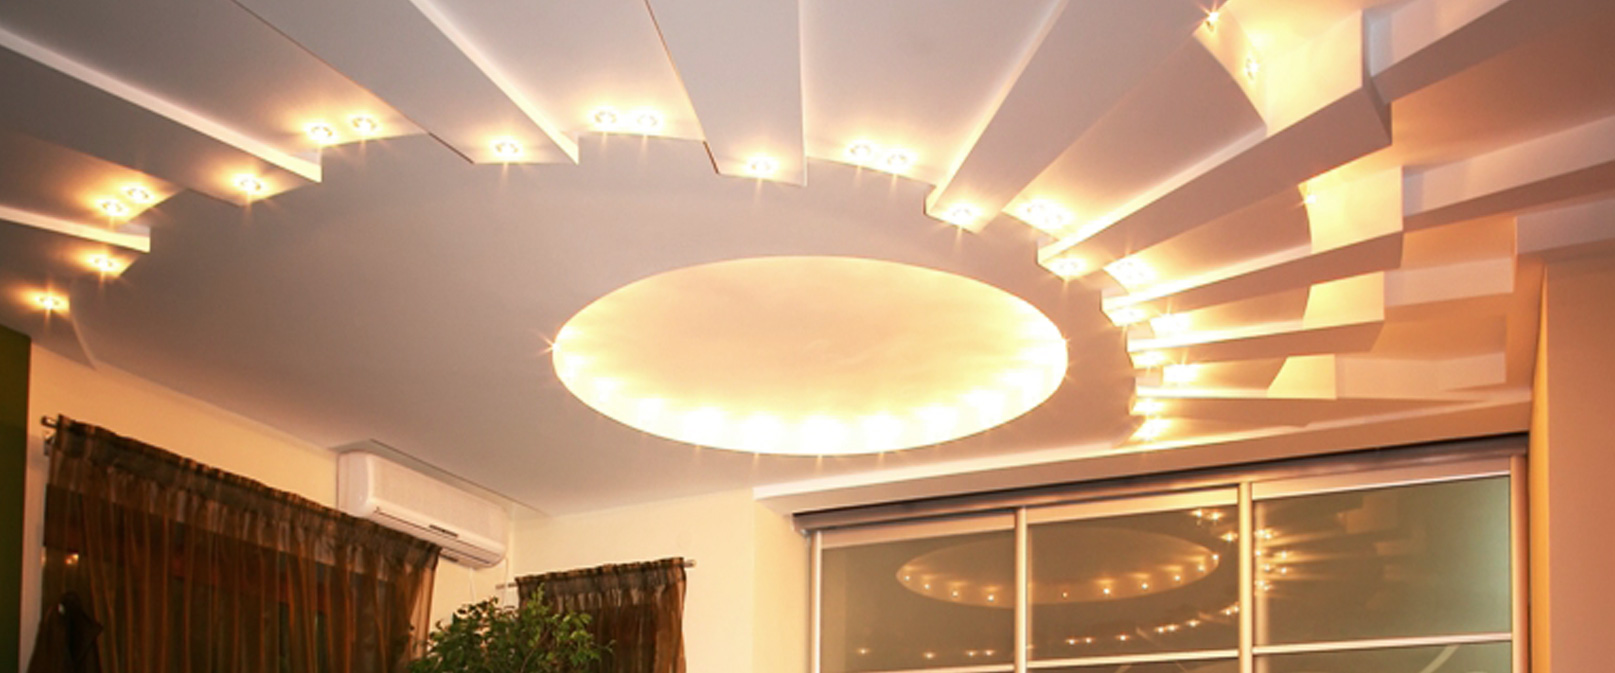 Lighting up the ceiling saint gobain gyproc india mozeypictures Images